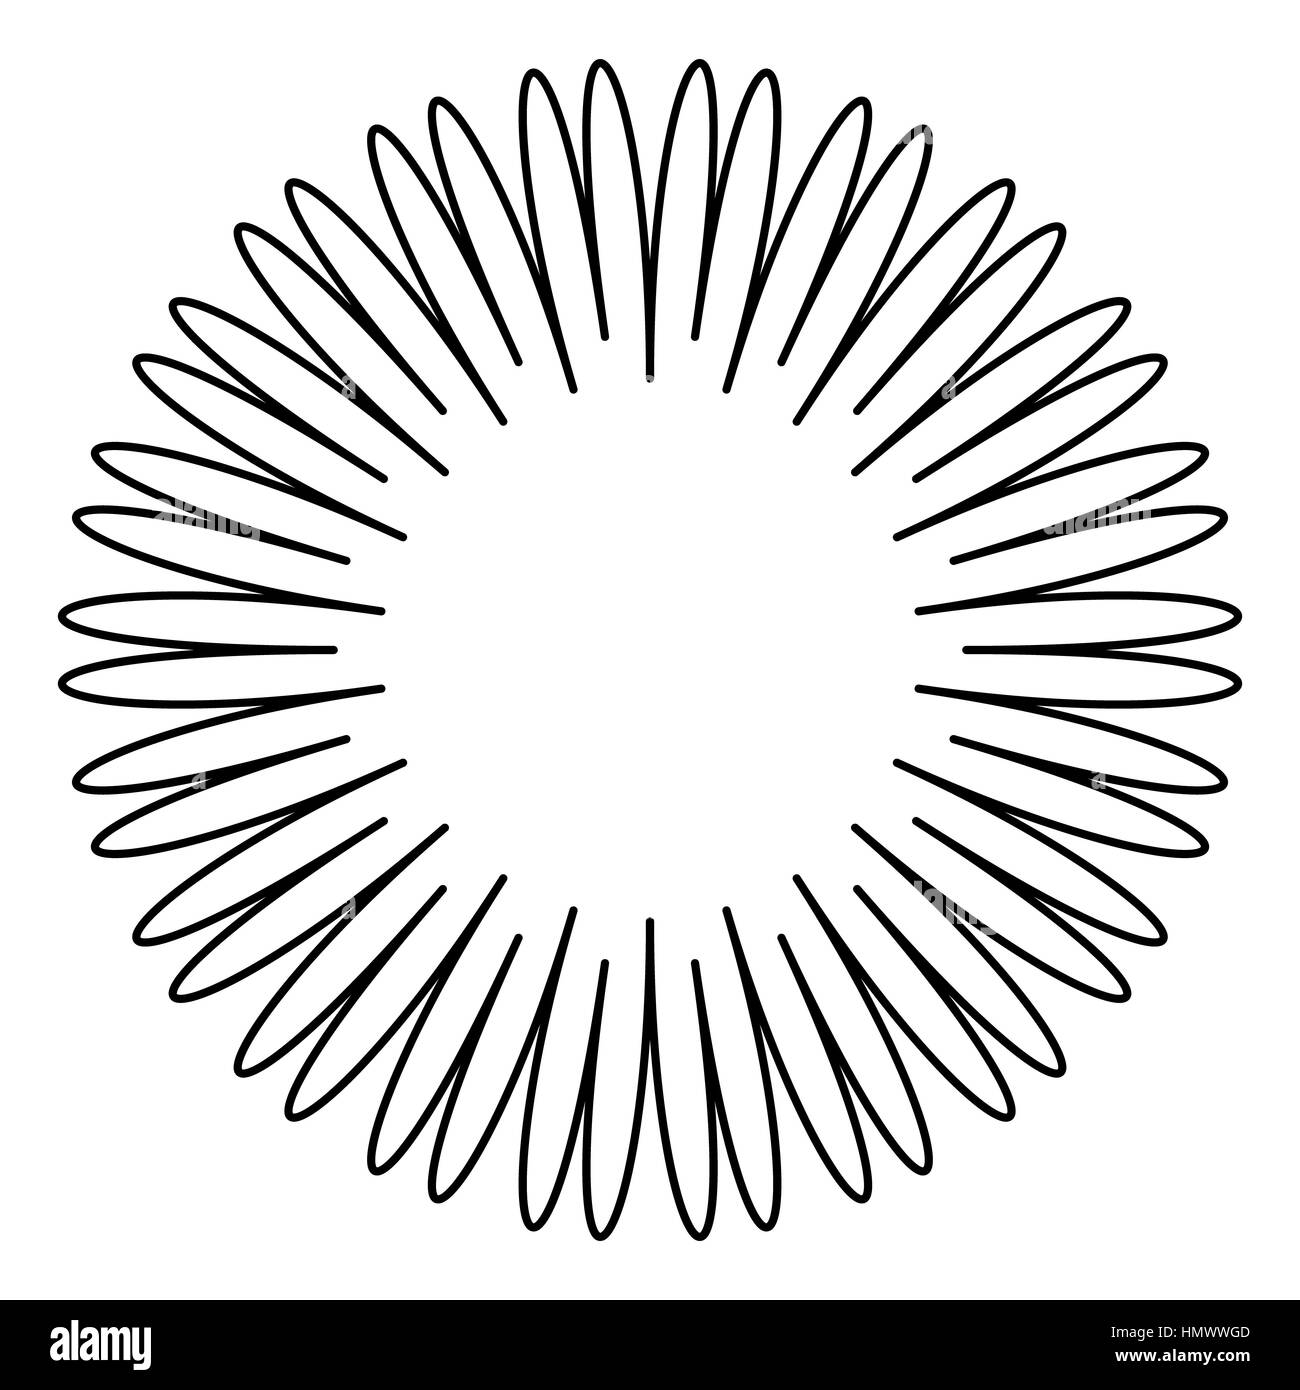 Contour element with radial lines isolated on white - Stock Image